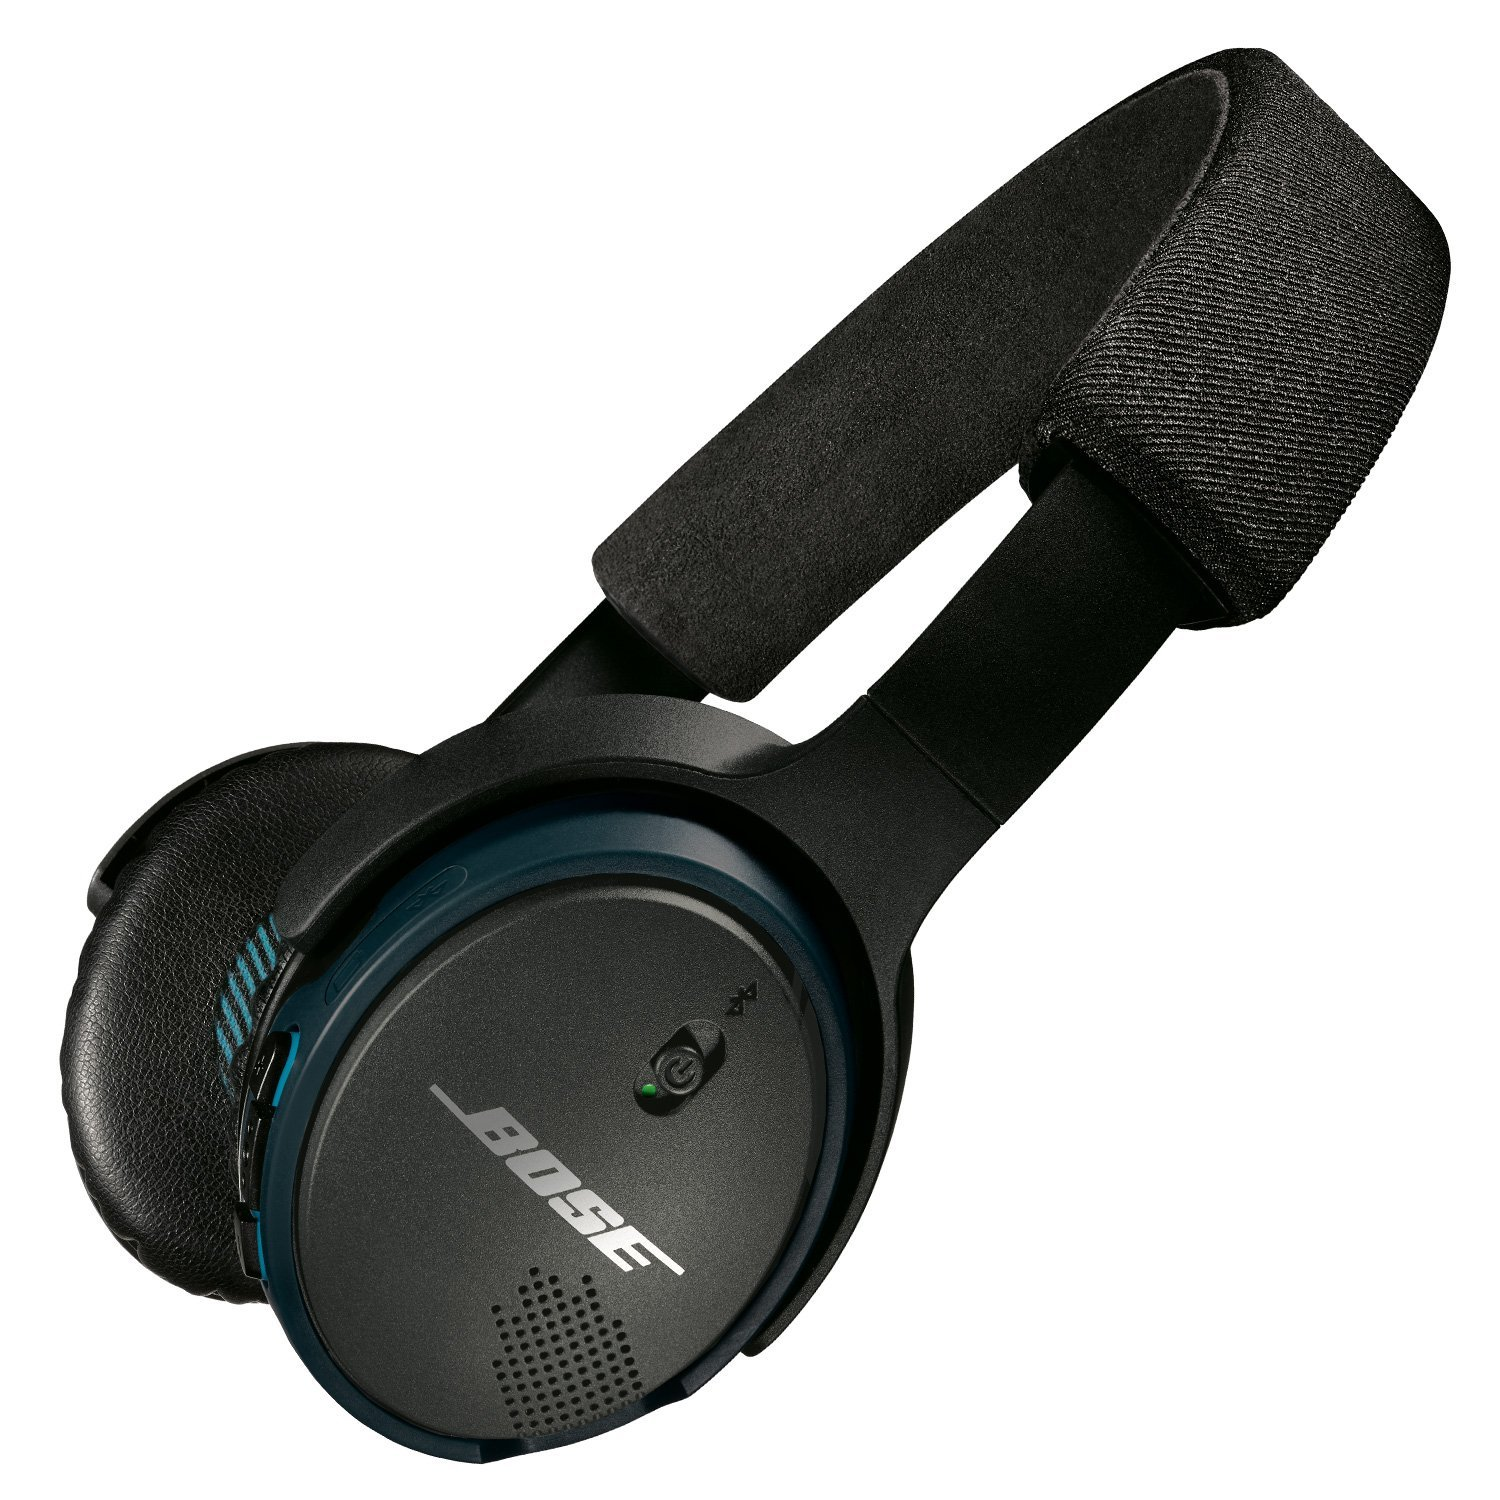 Sennheiser HD 4.50 Bluetooth Wireless Headphones – ANOTHER BEST FOR NOISE-CANCELLING